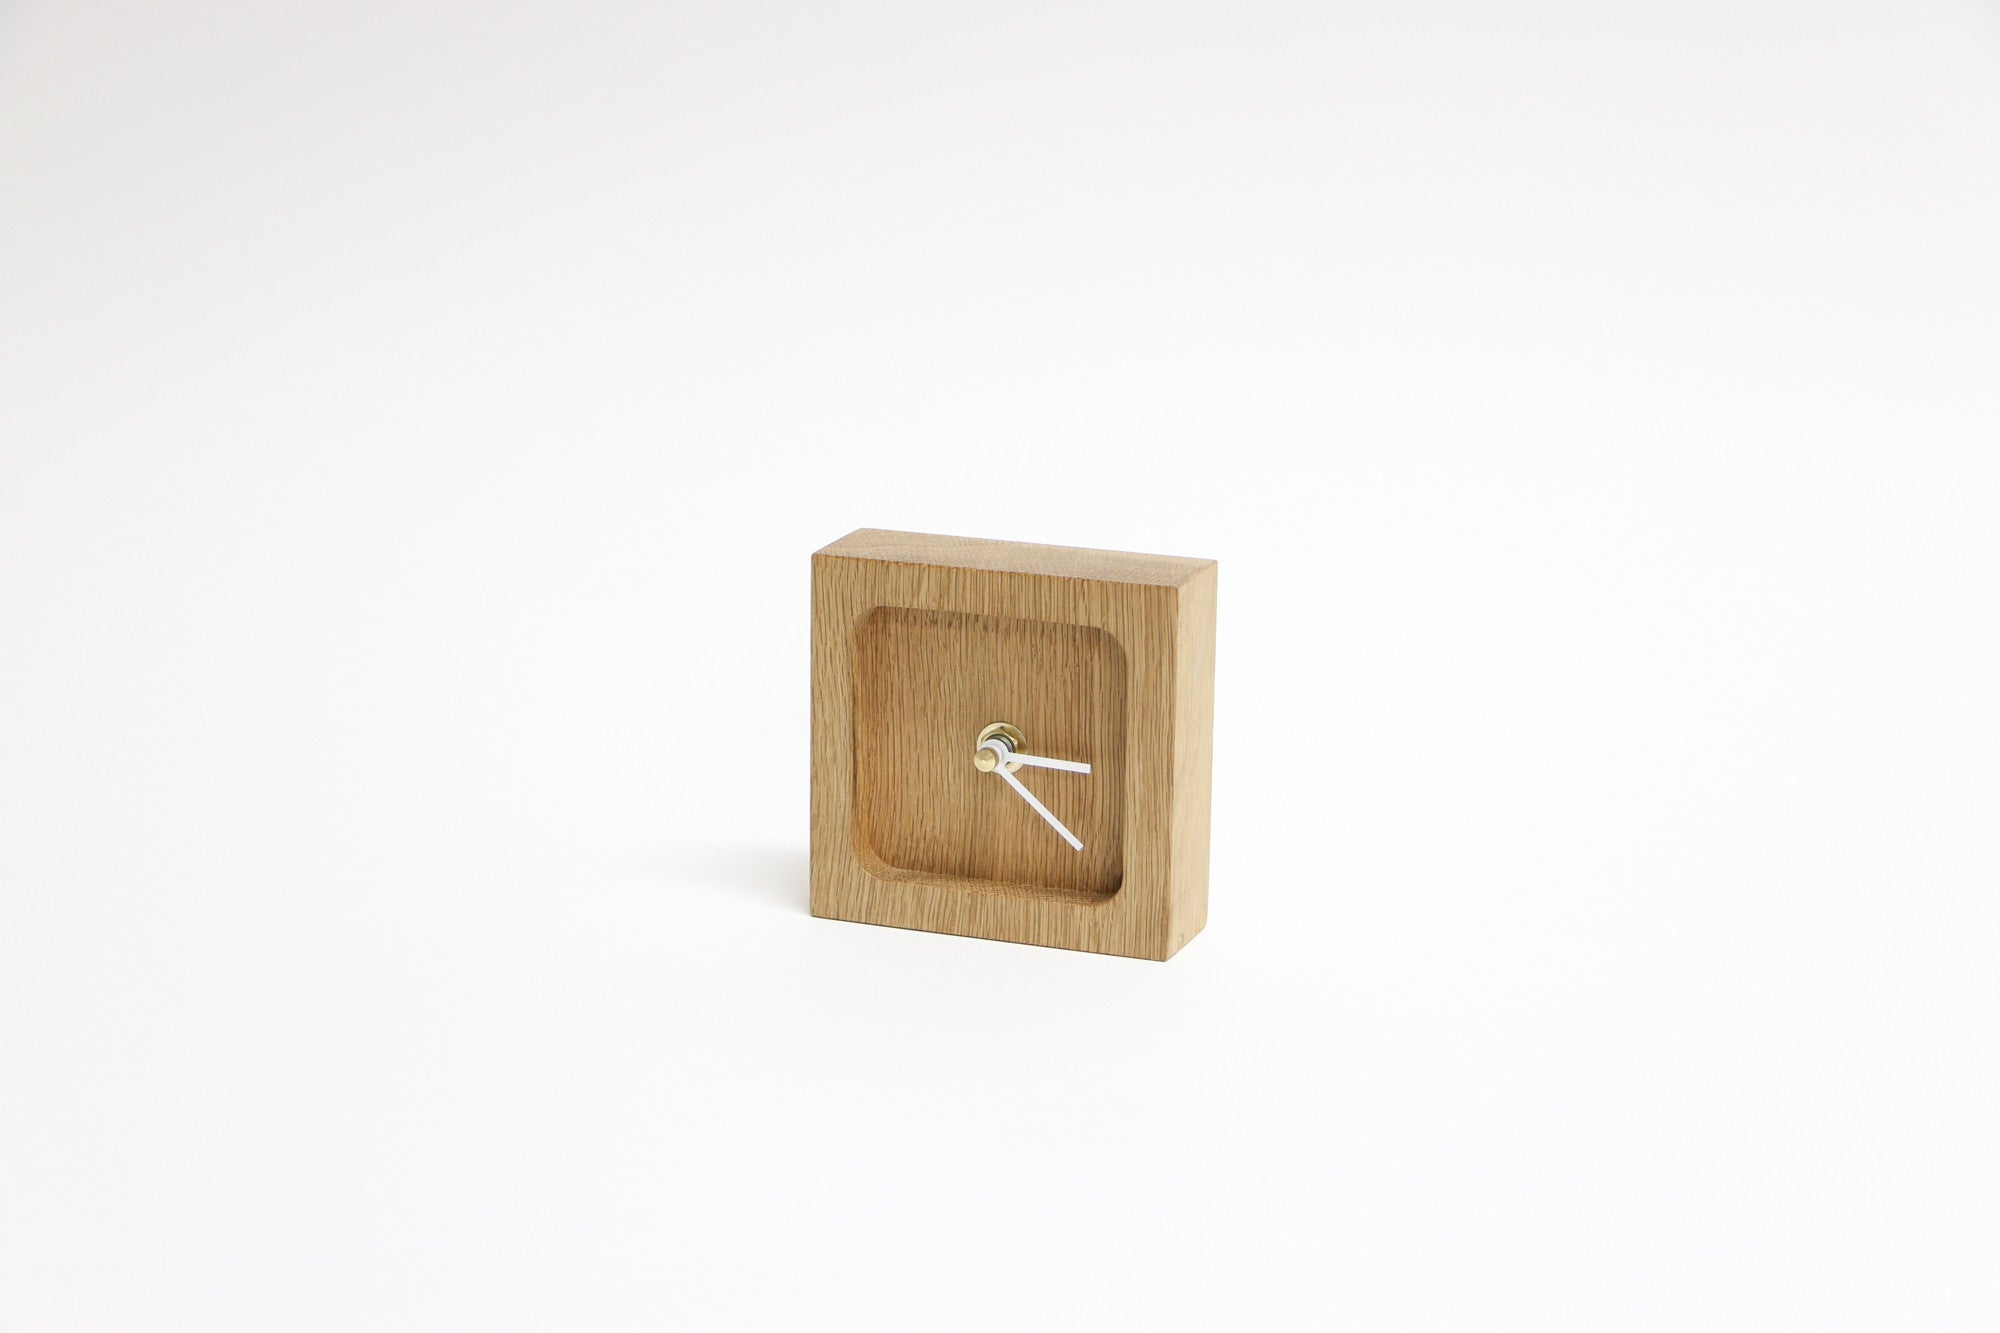 Timber Desk Clock